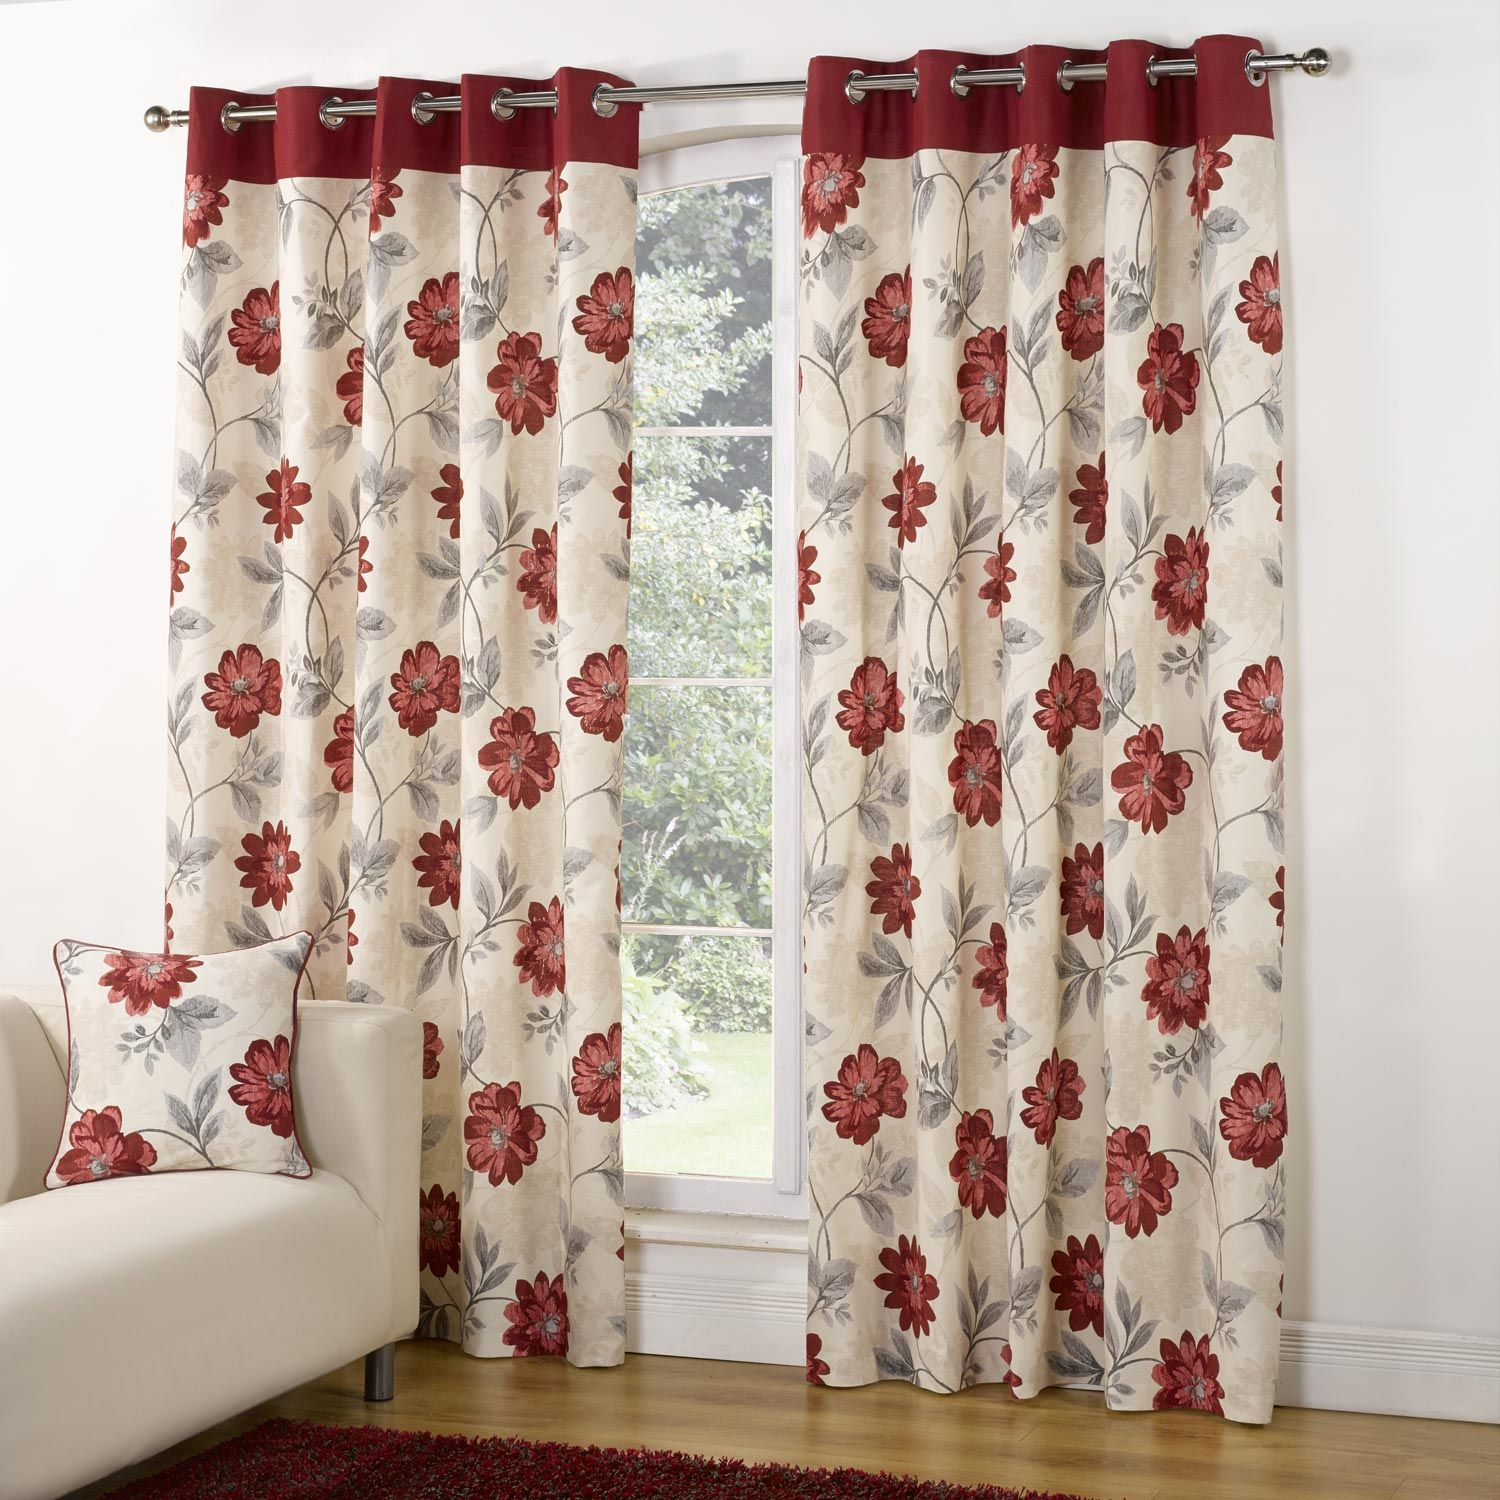 Modern Casa Floral Trail Print Lined Eyelet Curtains